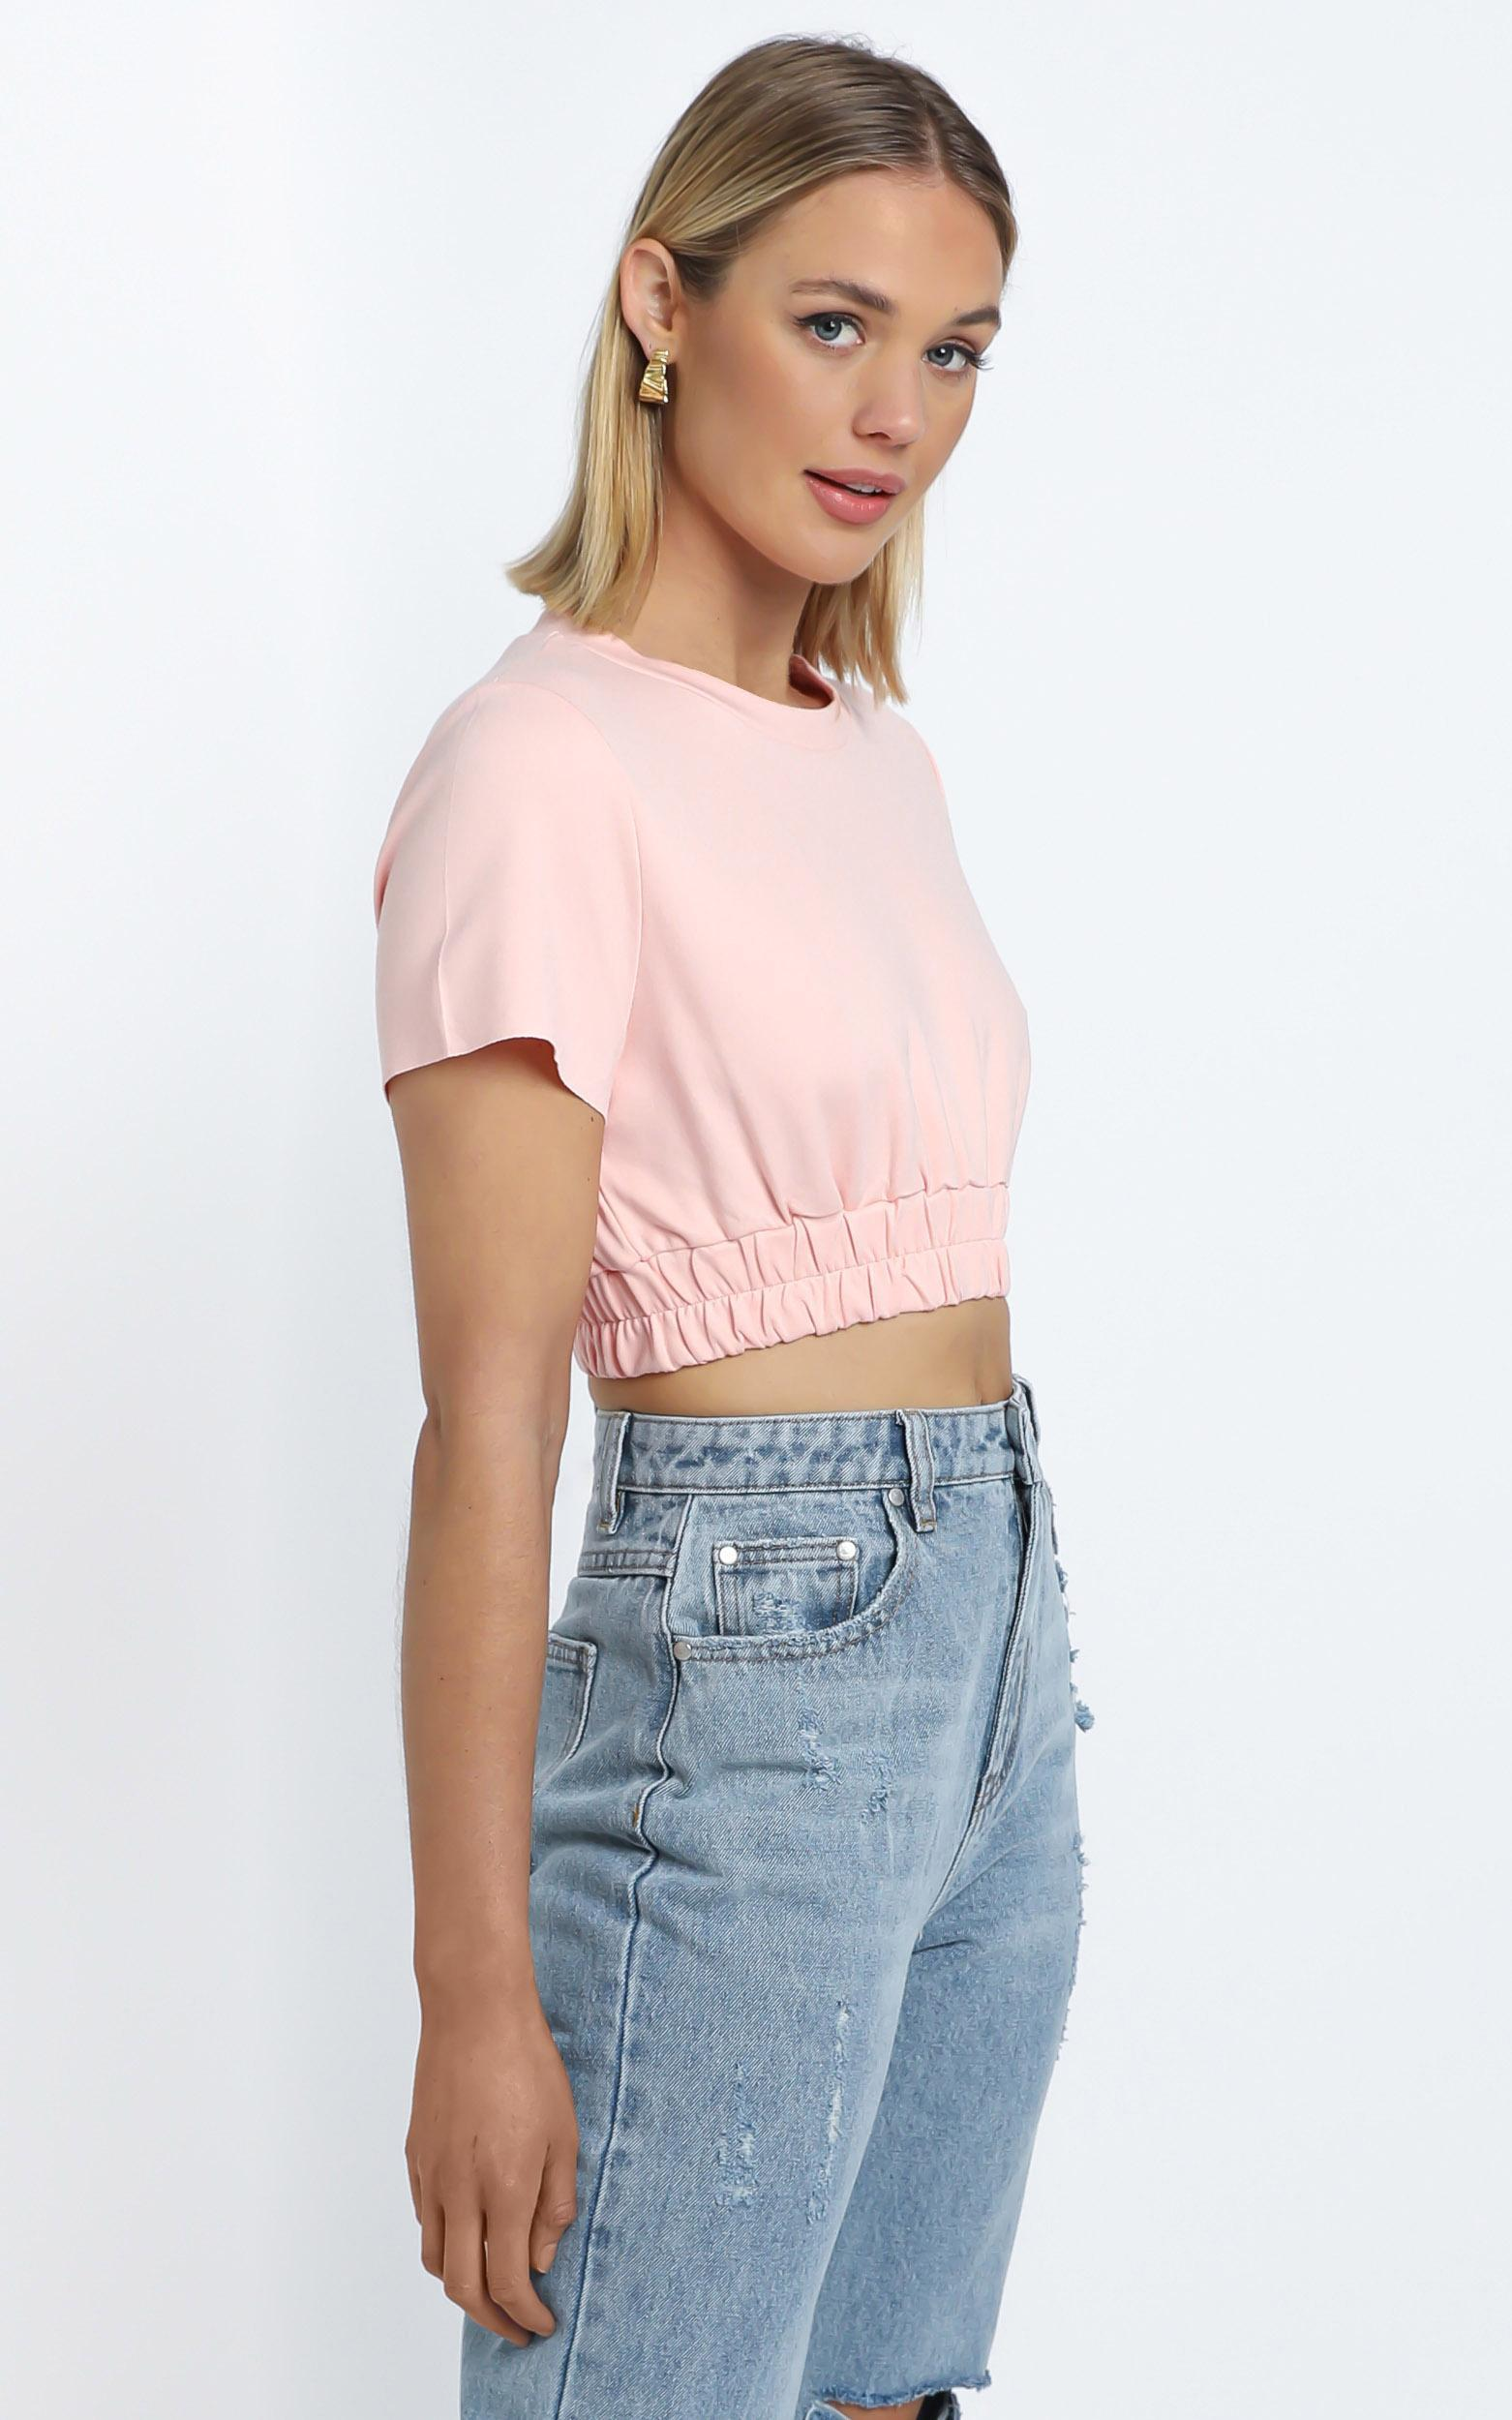 Zya The Label - Kira Tee in Pink - 14 (XL), PNK1, hi-res image number null